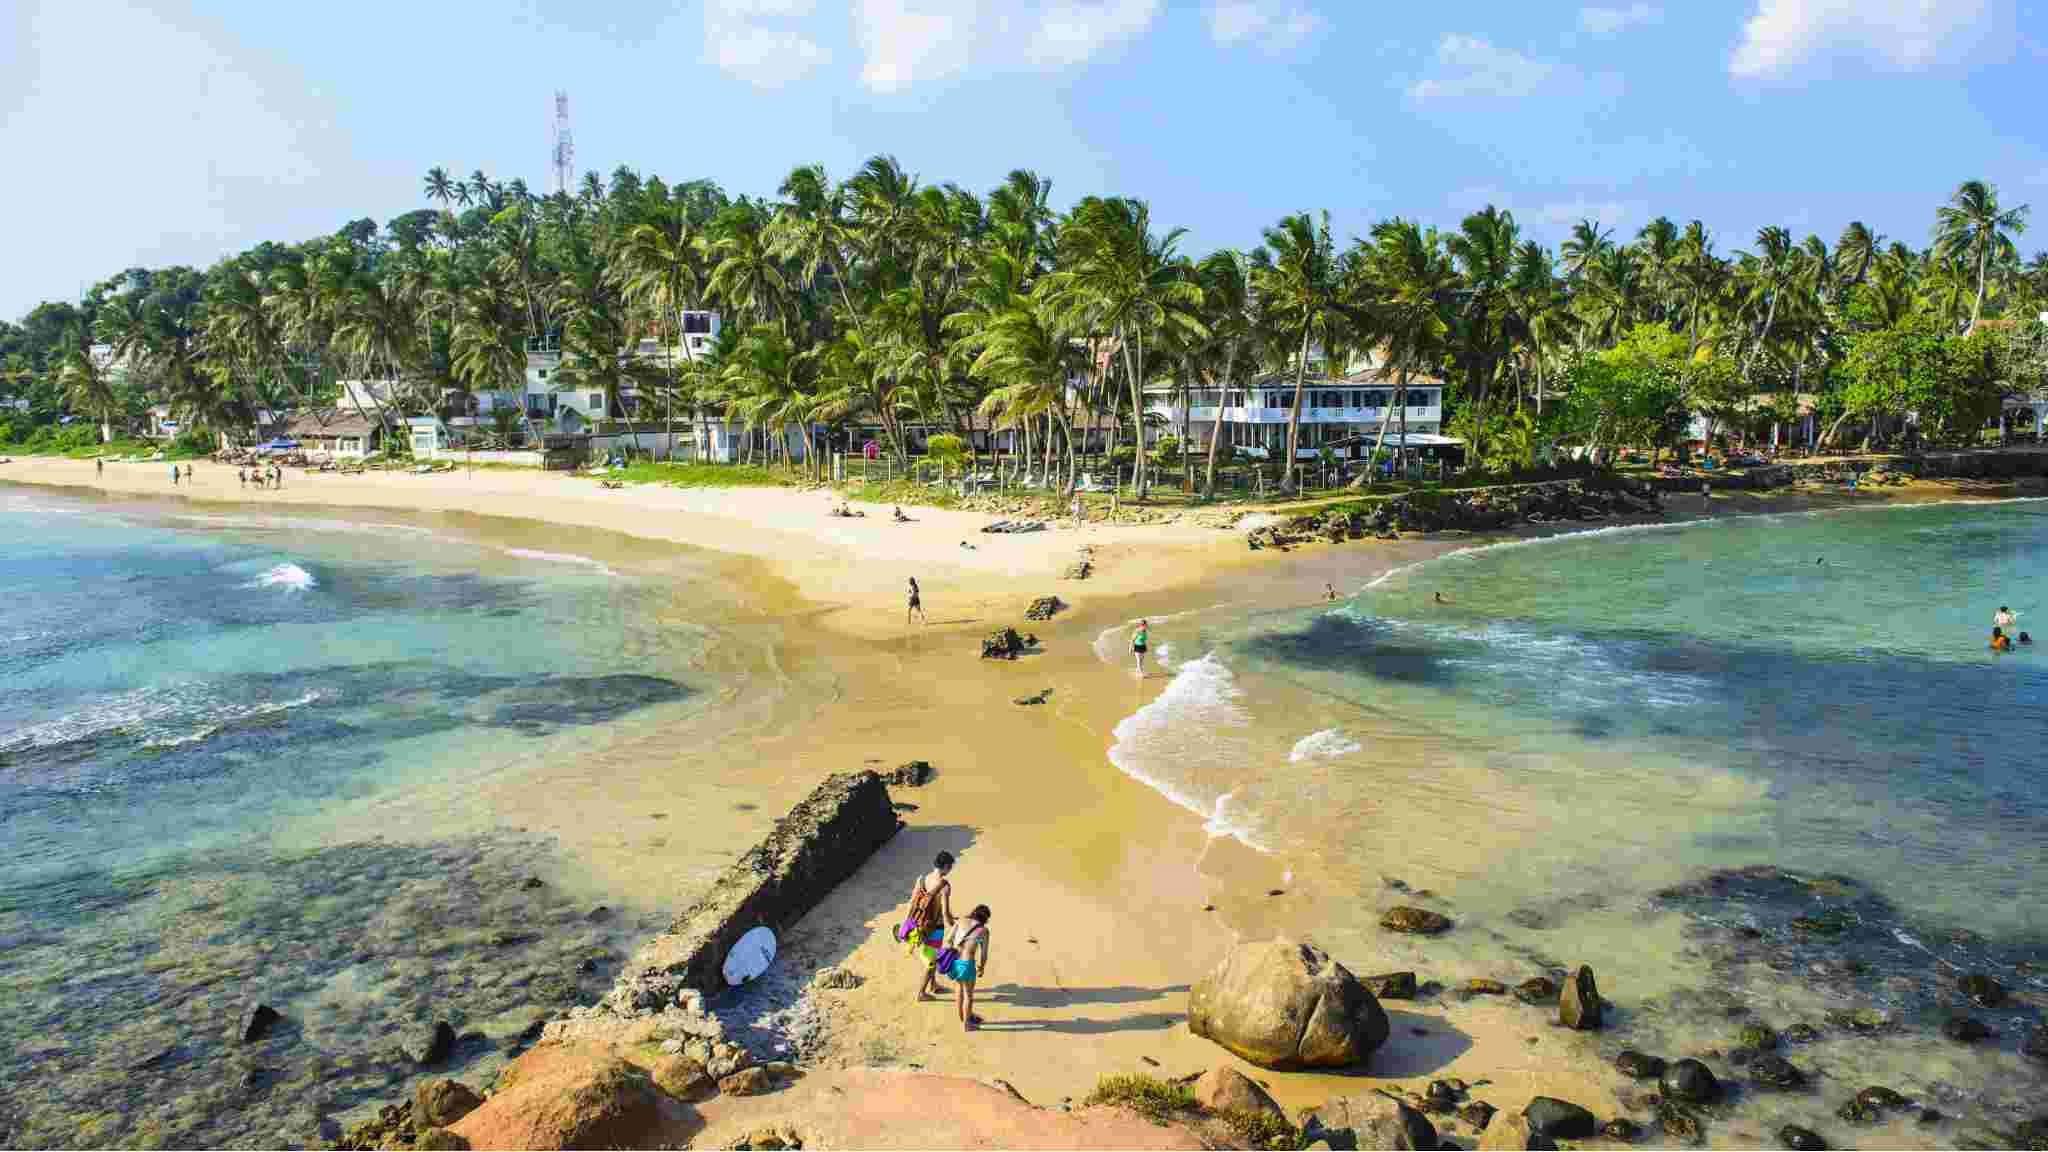 UN says living standards in Sri Lanka can drop due to climate related vulnerabilities